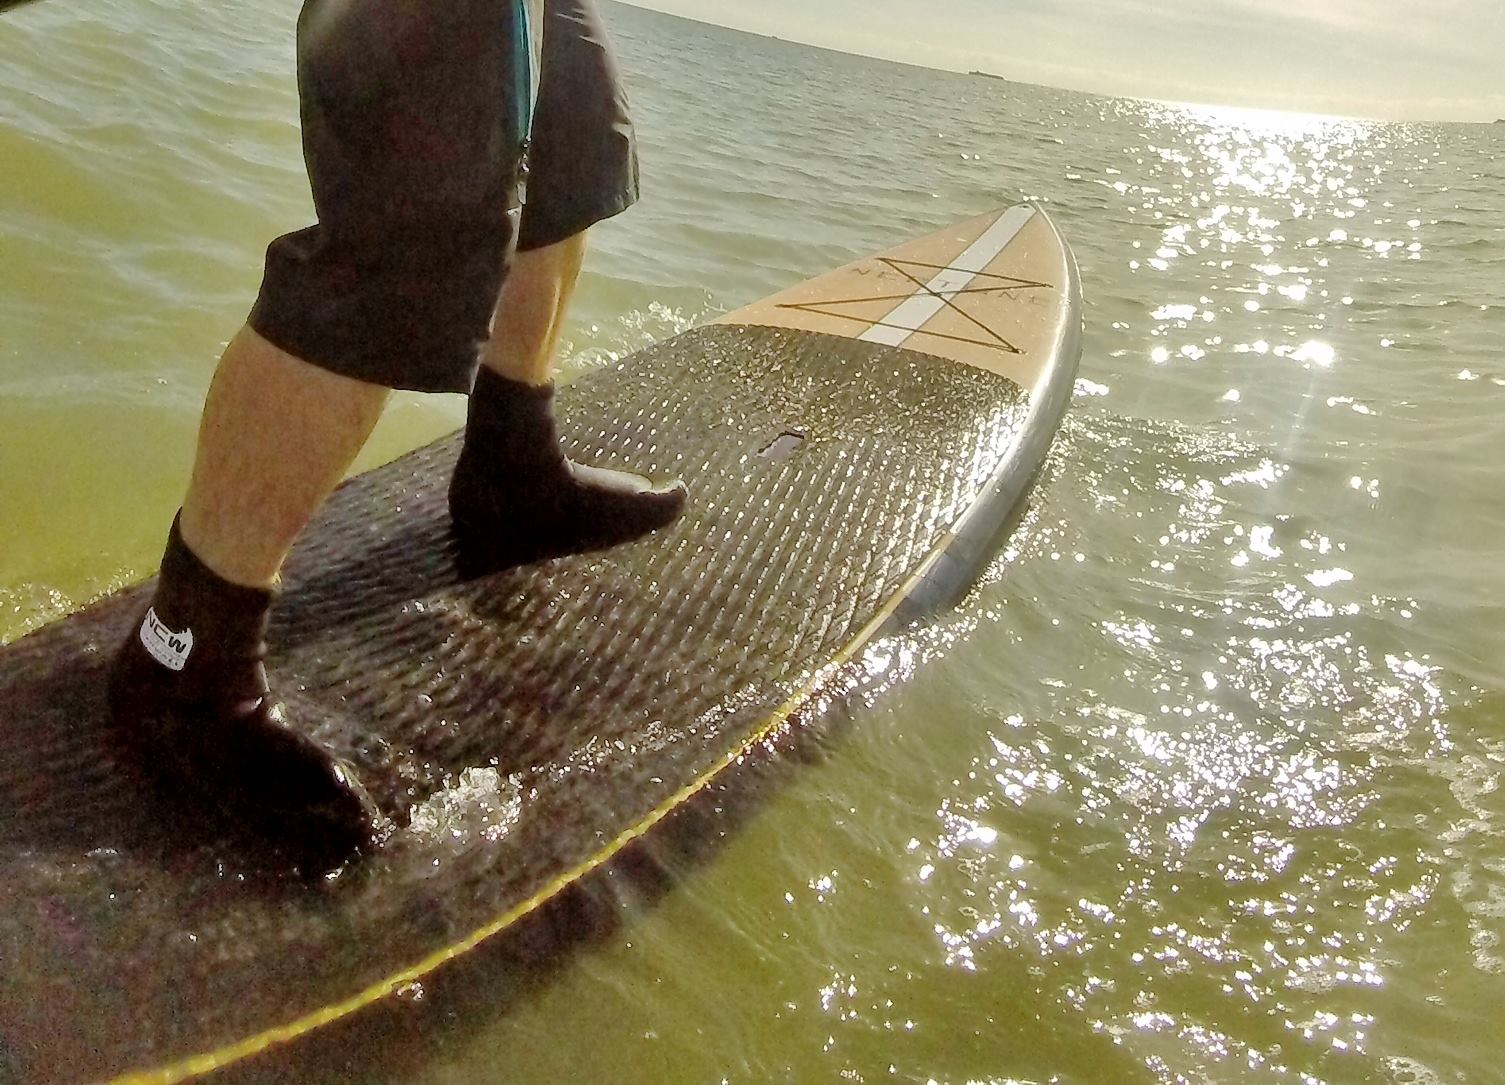 5mm surf boot